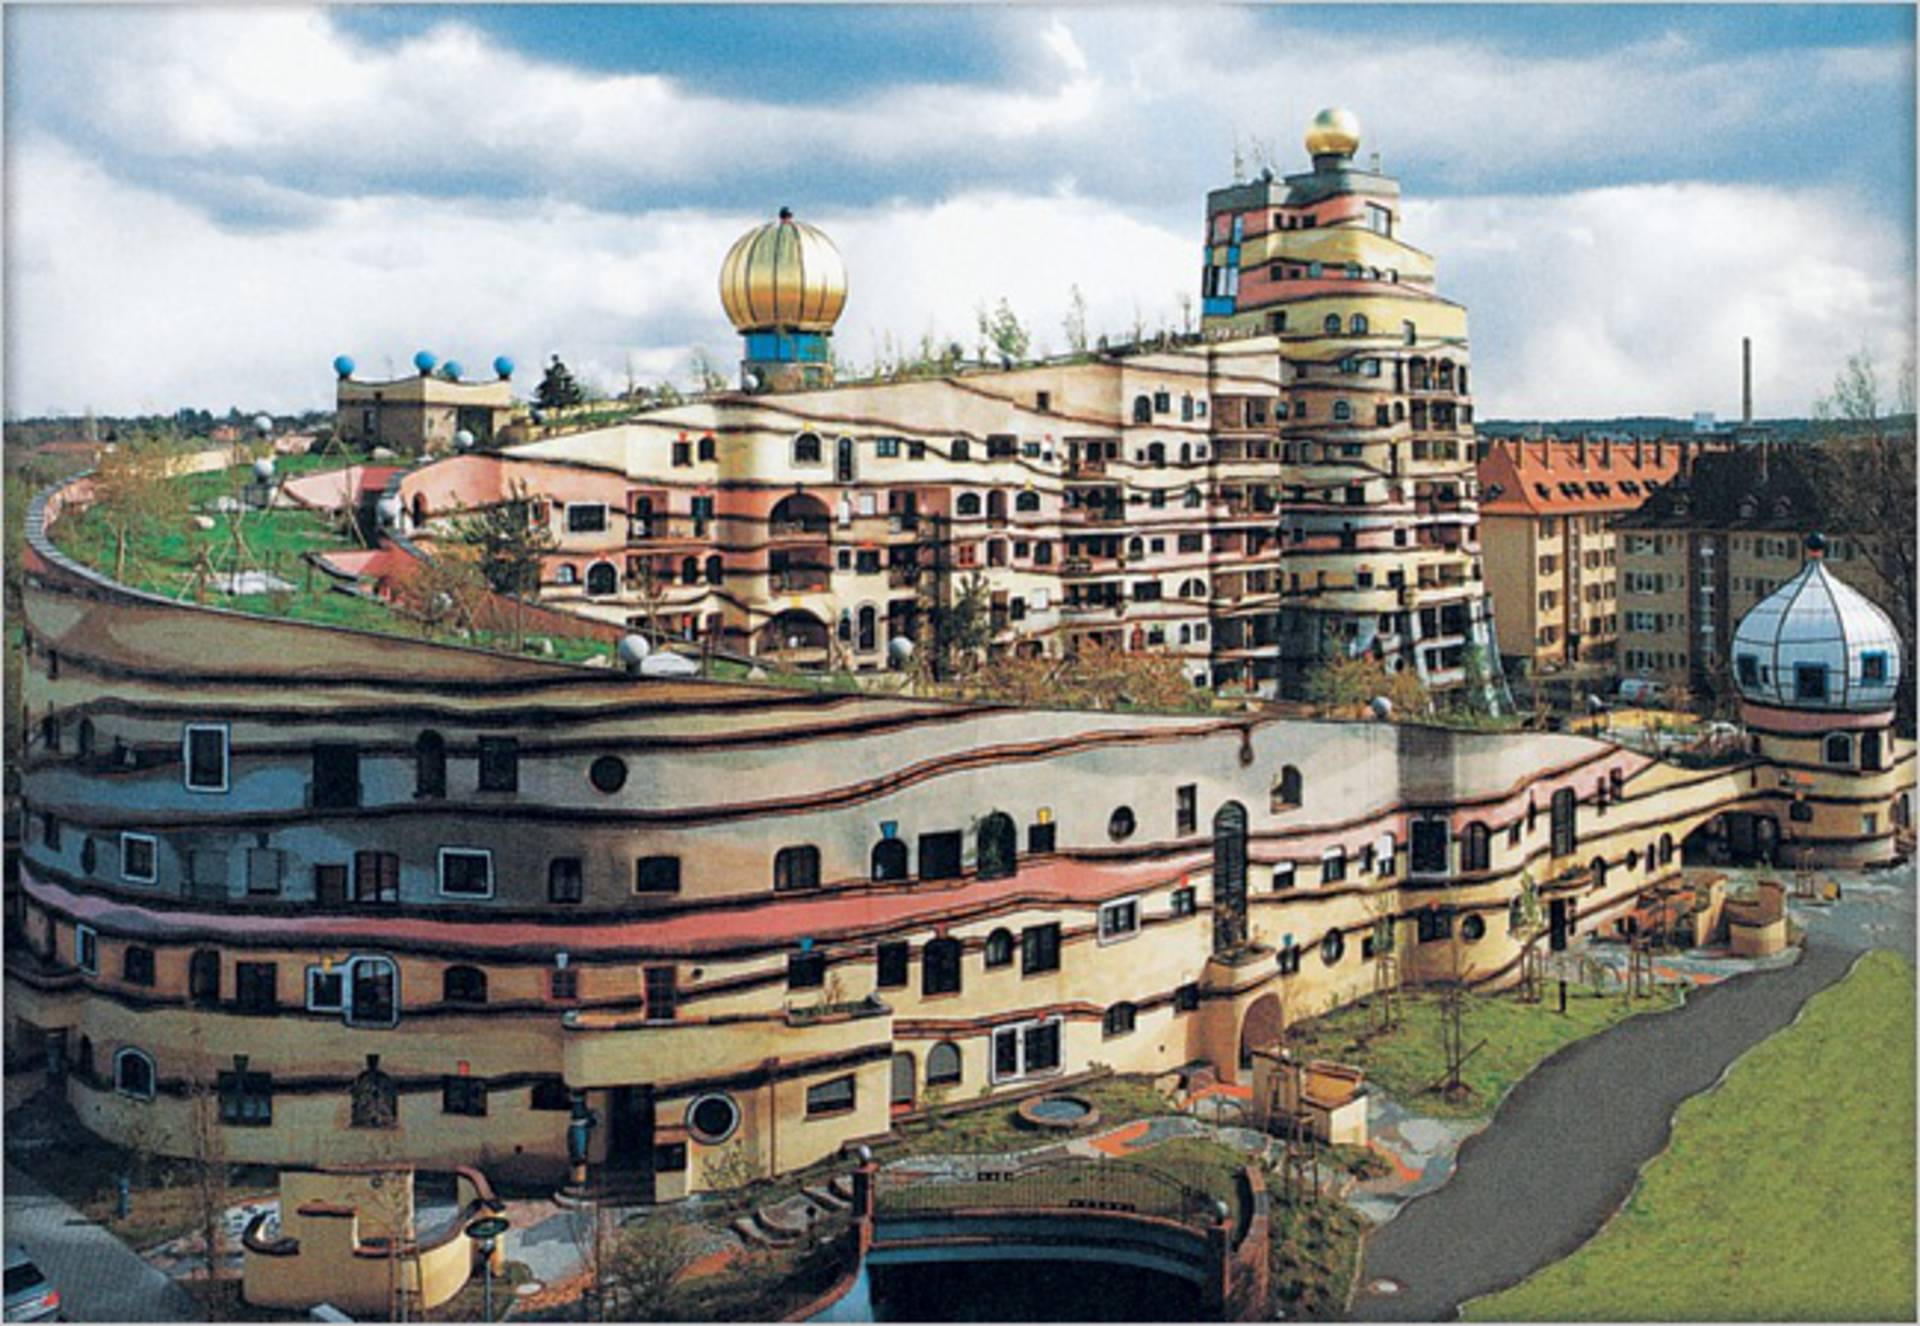 Forest Spiral By Hundertwasser Ndash The Unique House In Germany - Curvy-spiral-house-design